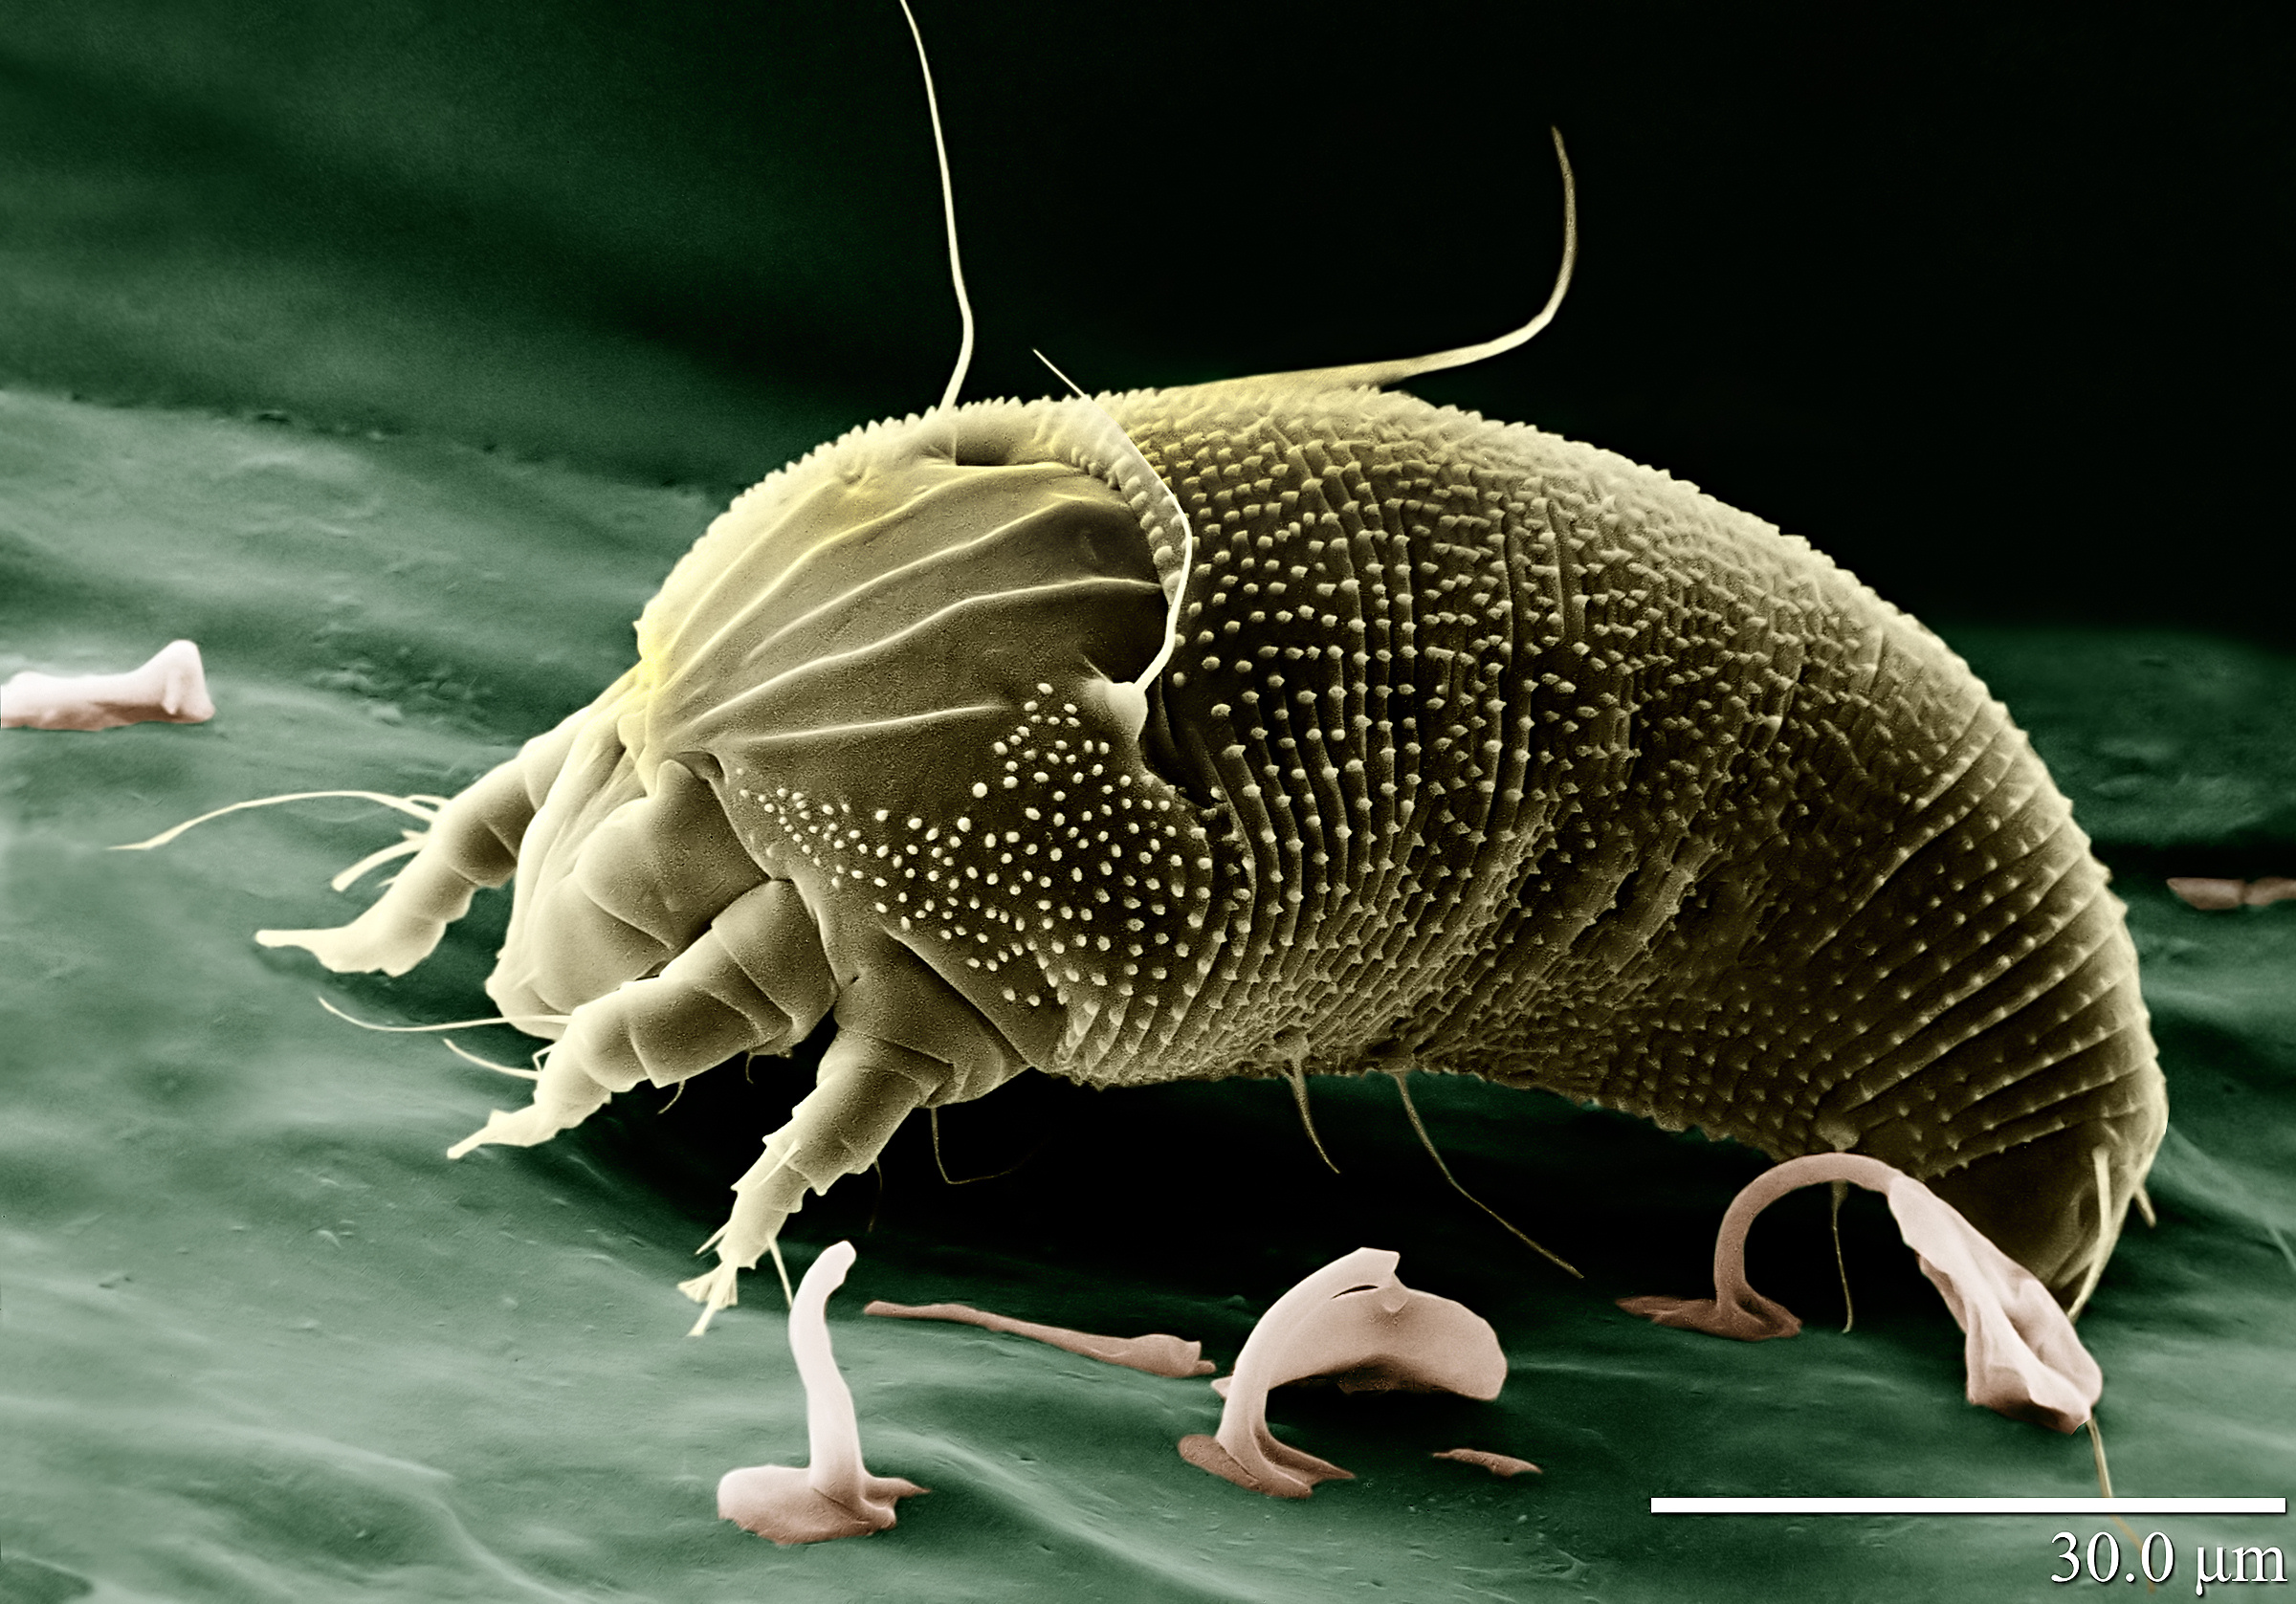 https://upload.wikimedia.org/wikipedia/commons/5/51/Rust_Mite,_Aceria_anthocoptes.jpg